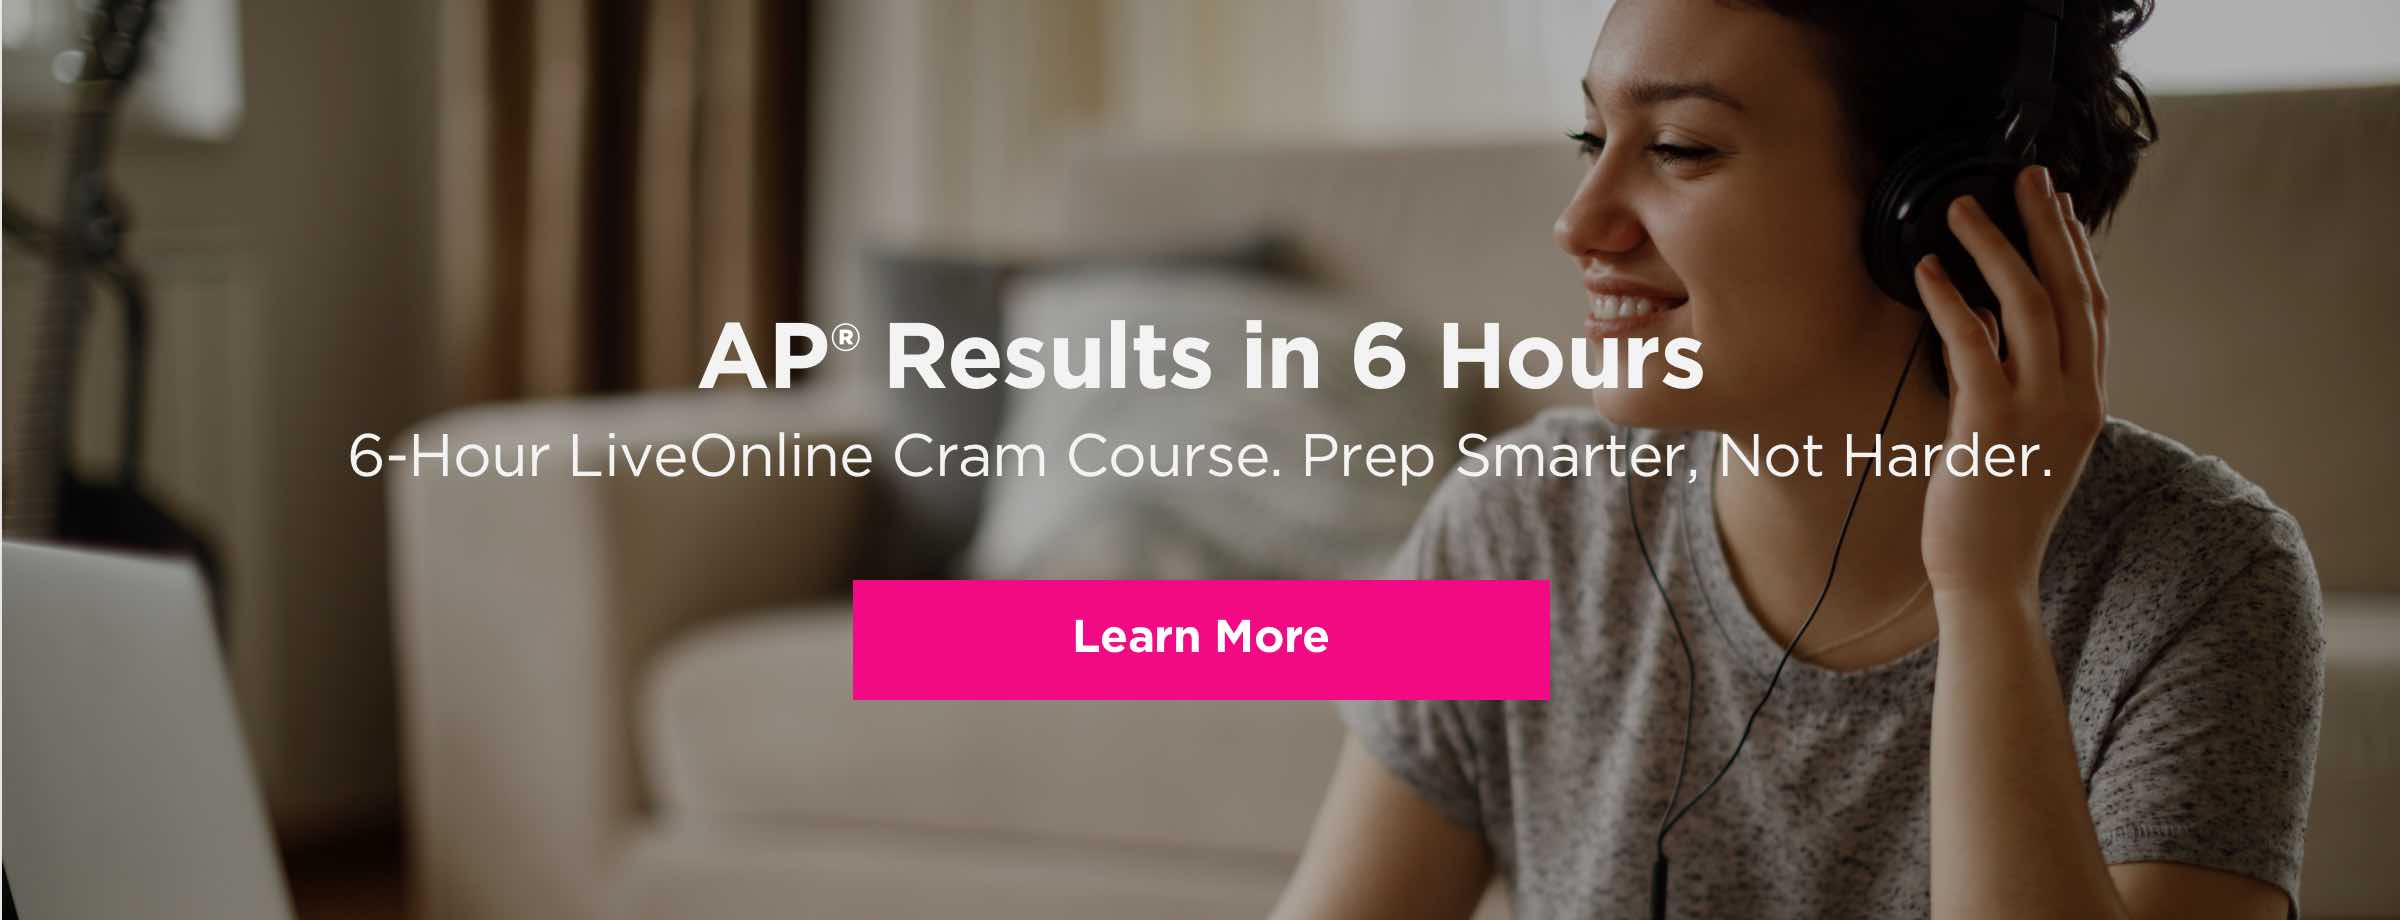 AP Cram Course Hero